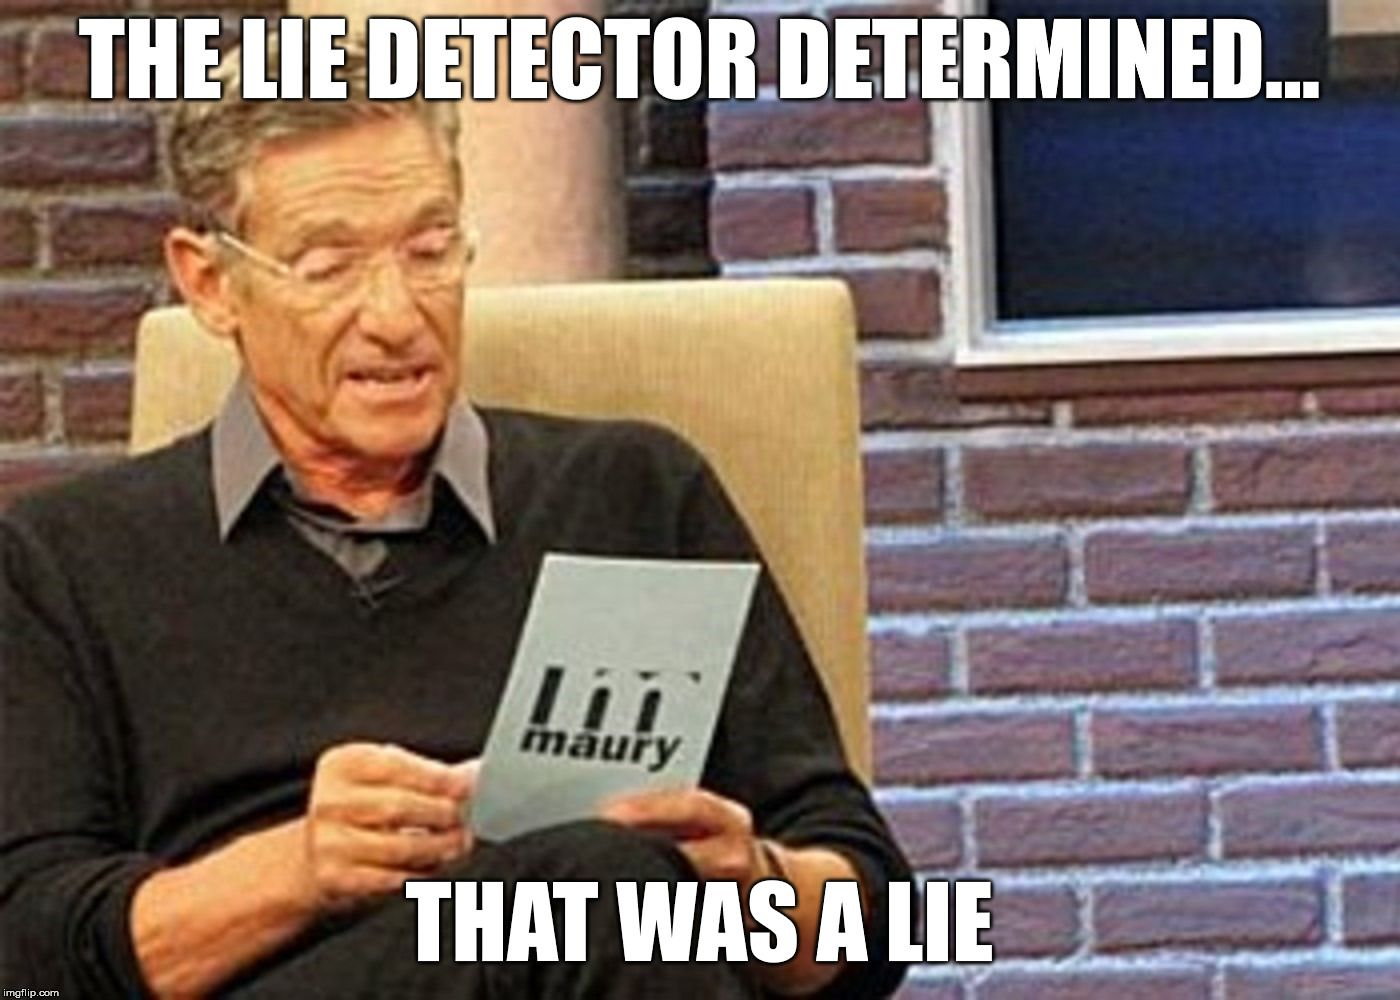 maury povich lie detector results hd - Imgflip in 2020 | Lie detector, Lie, Fun to be one